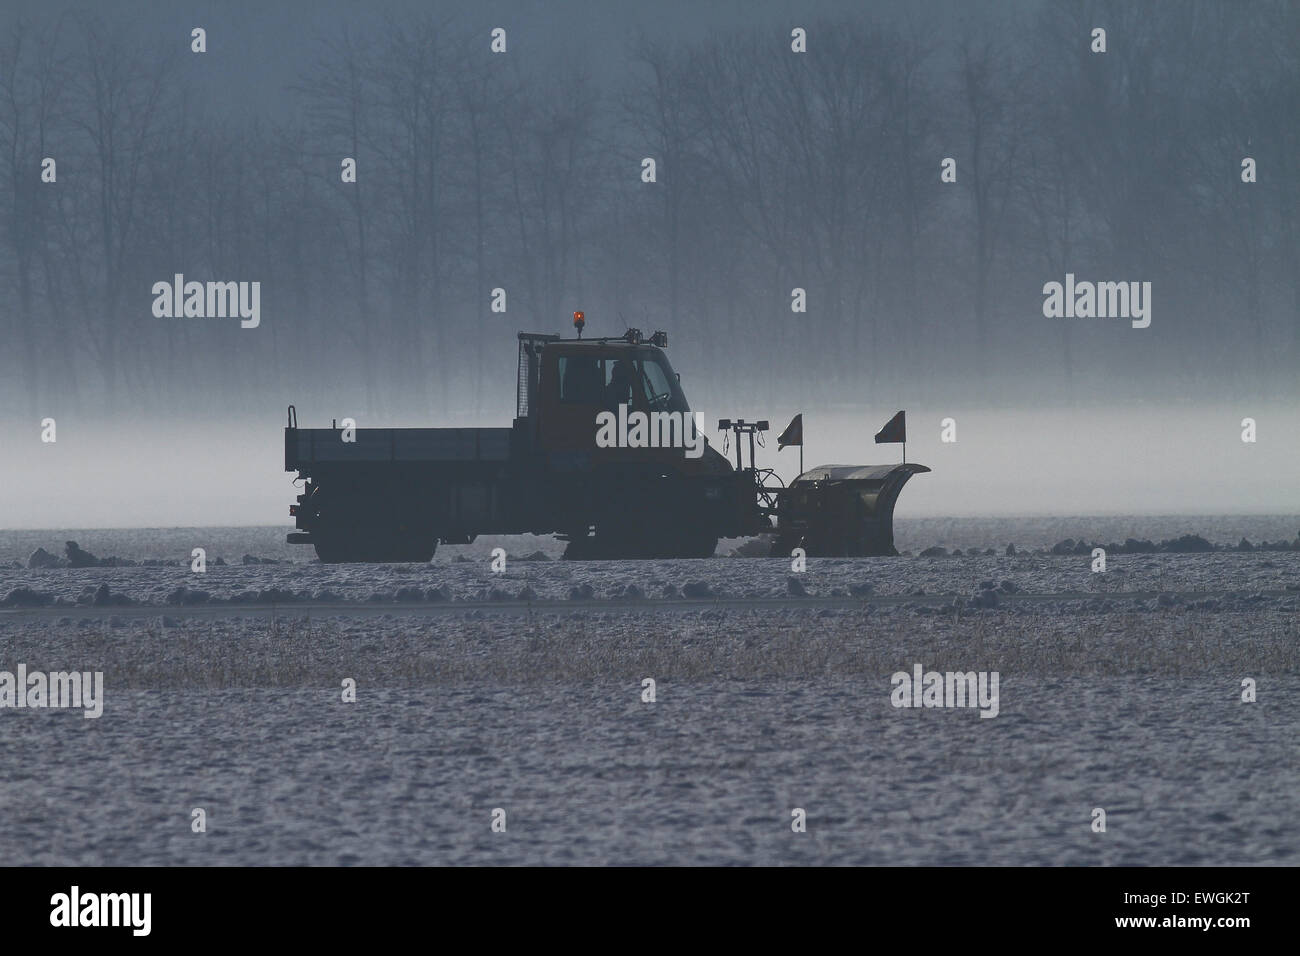 Snowplow removing snow at an airfield - Stock Image